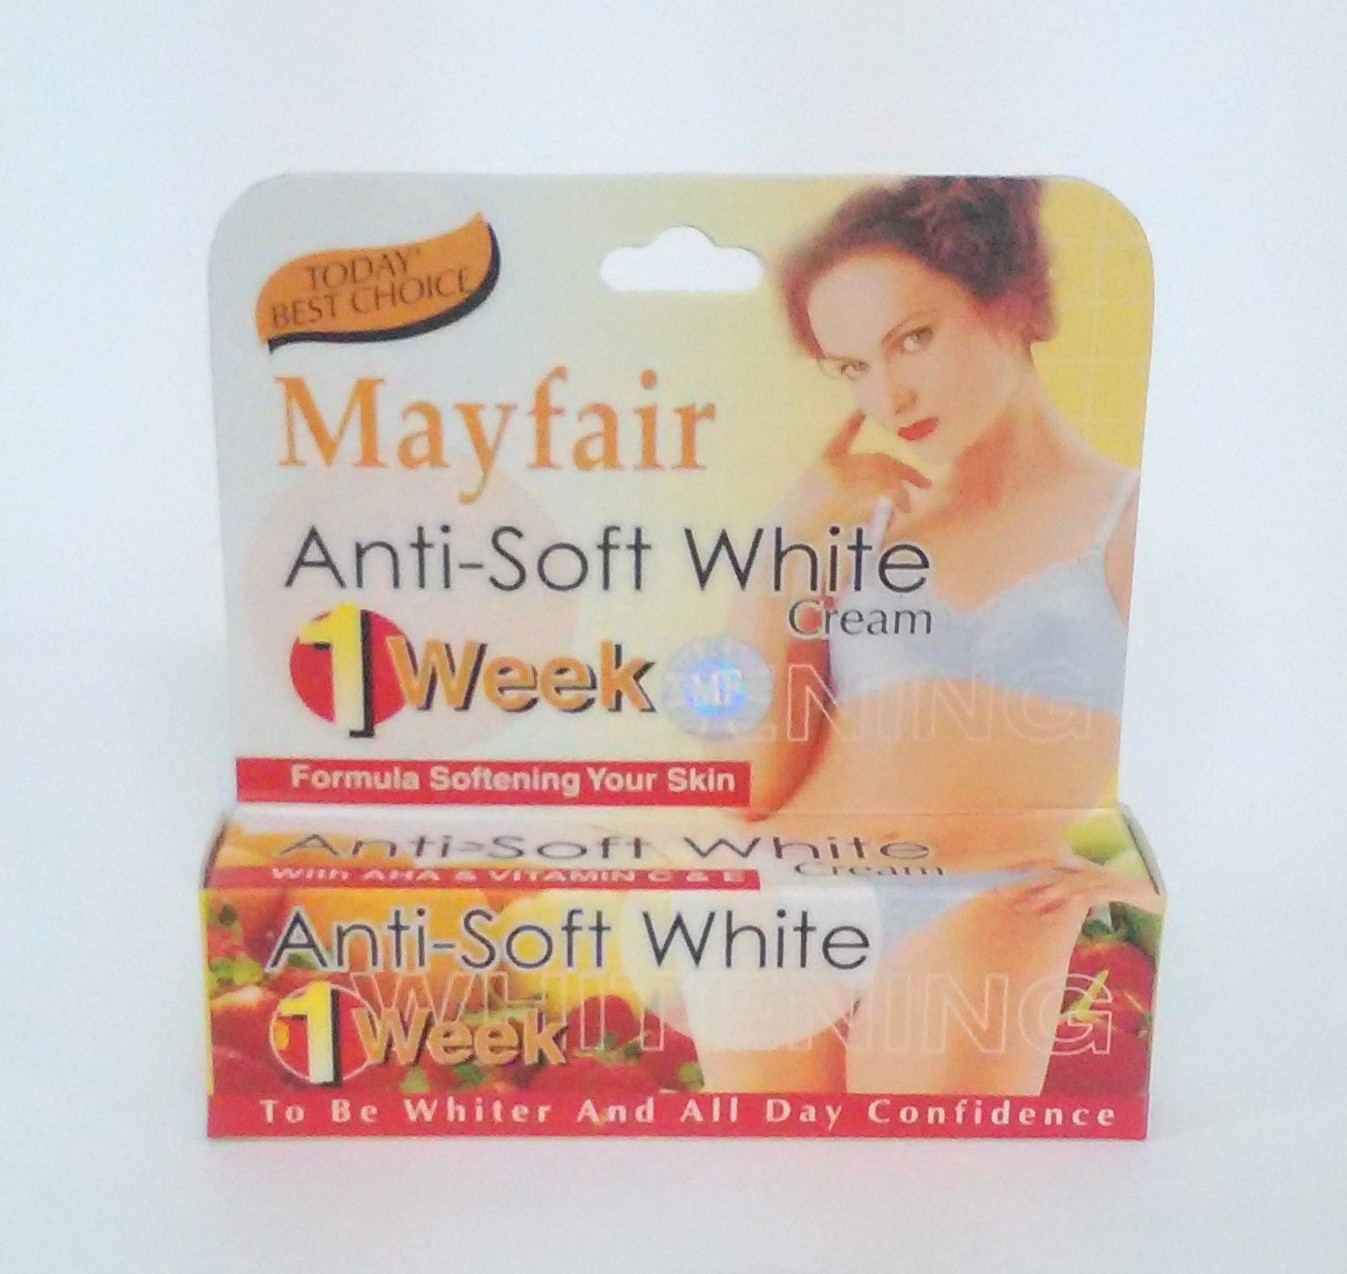 Mayfair Anti-Soft White Cream 1Week ホワイトニング 2個セット